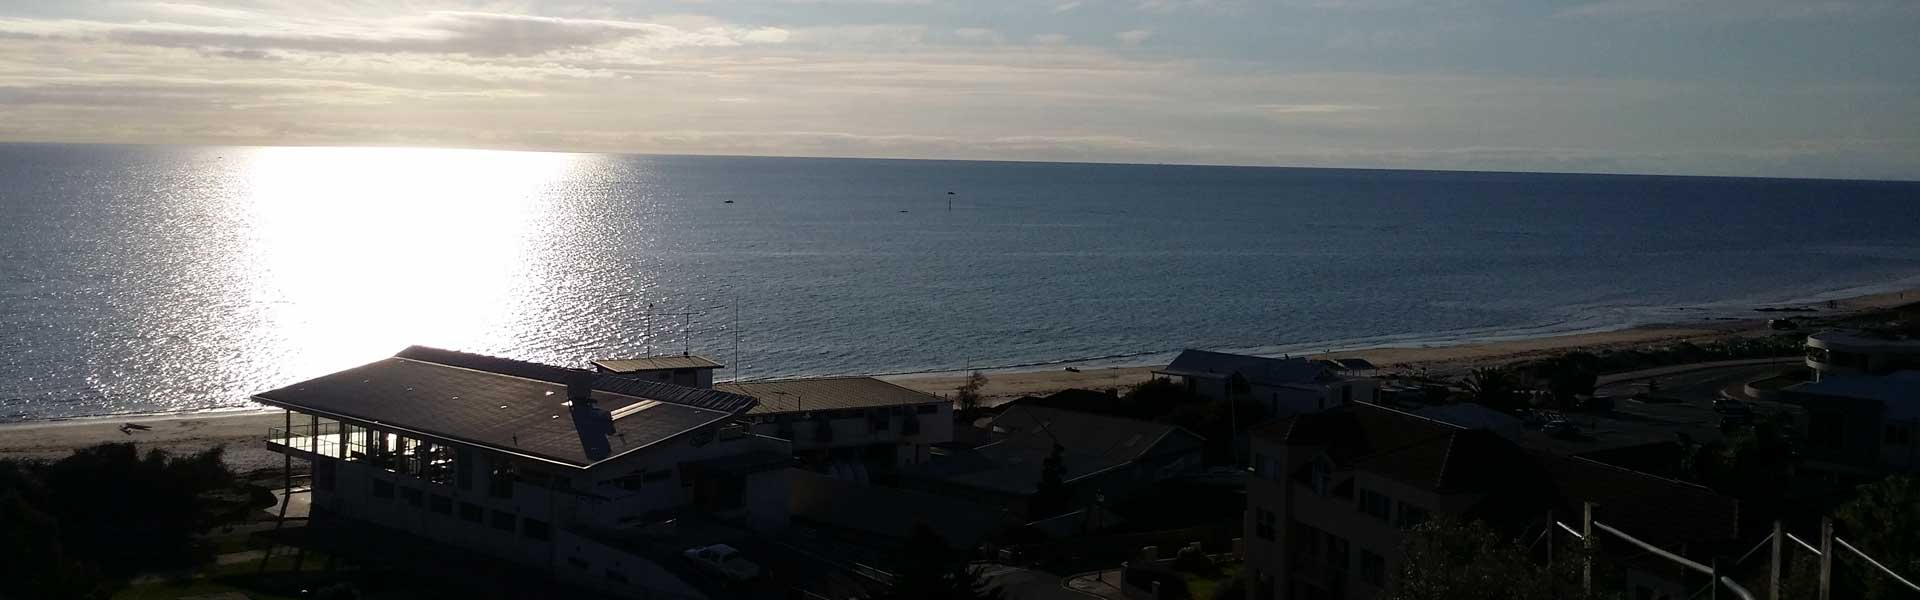 seacliff-slsc-view-from-above